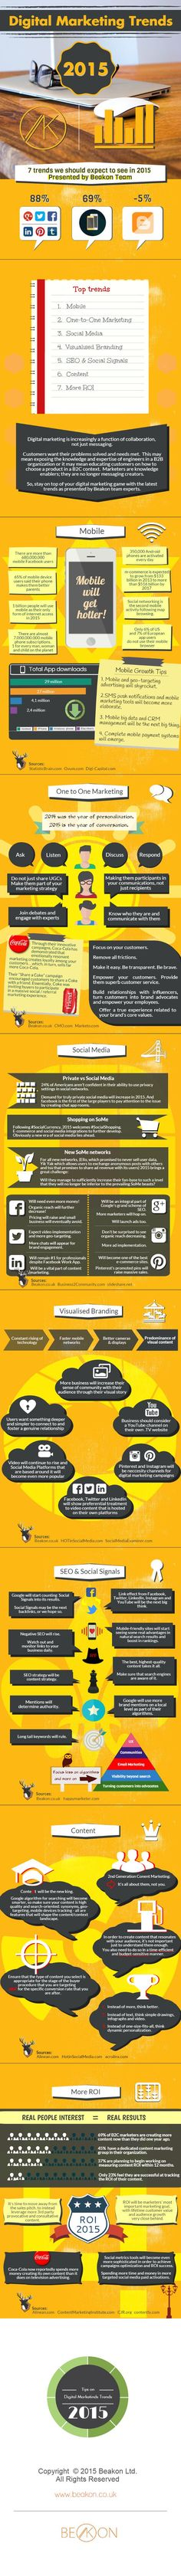 Digital Marketing Trends 2015 [ #infographic ]